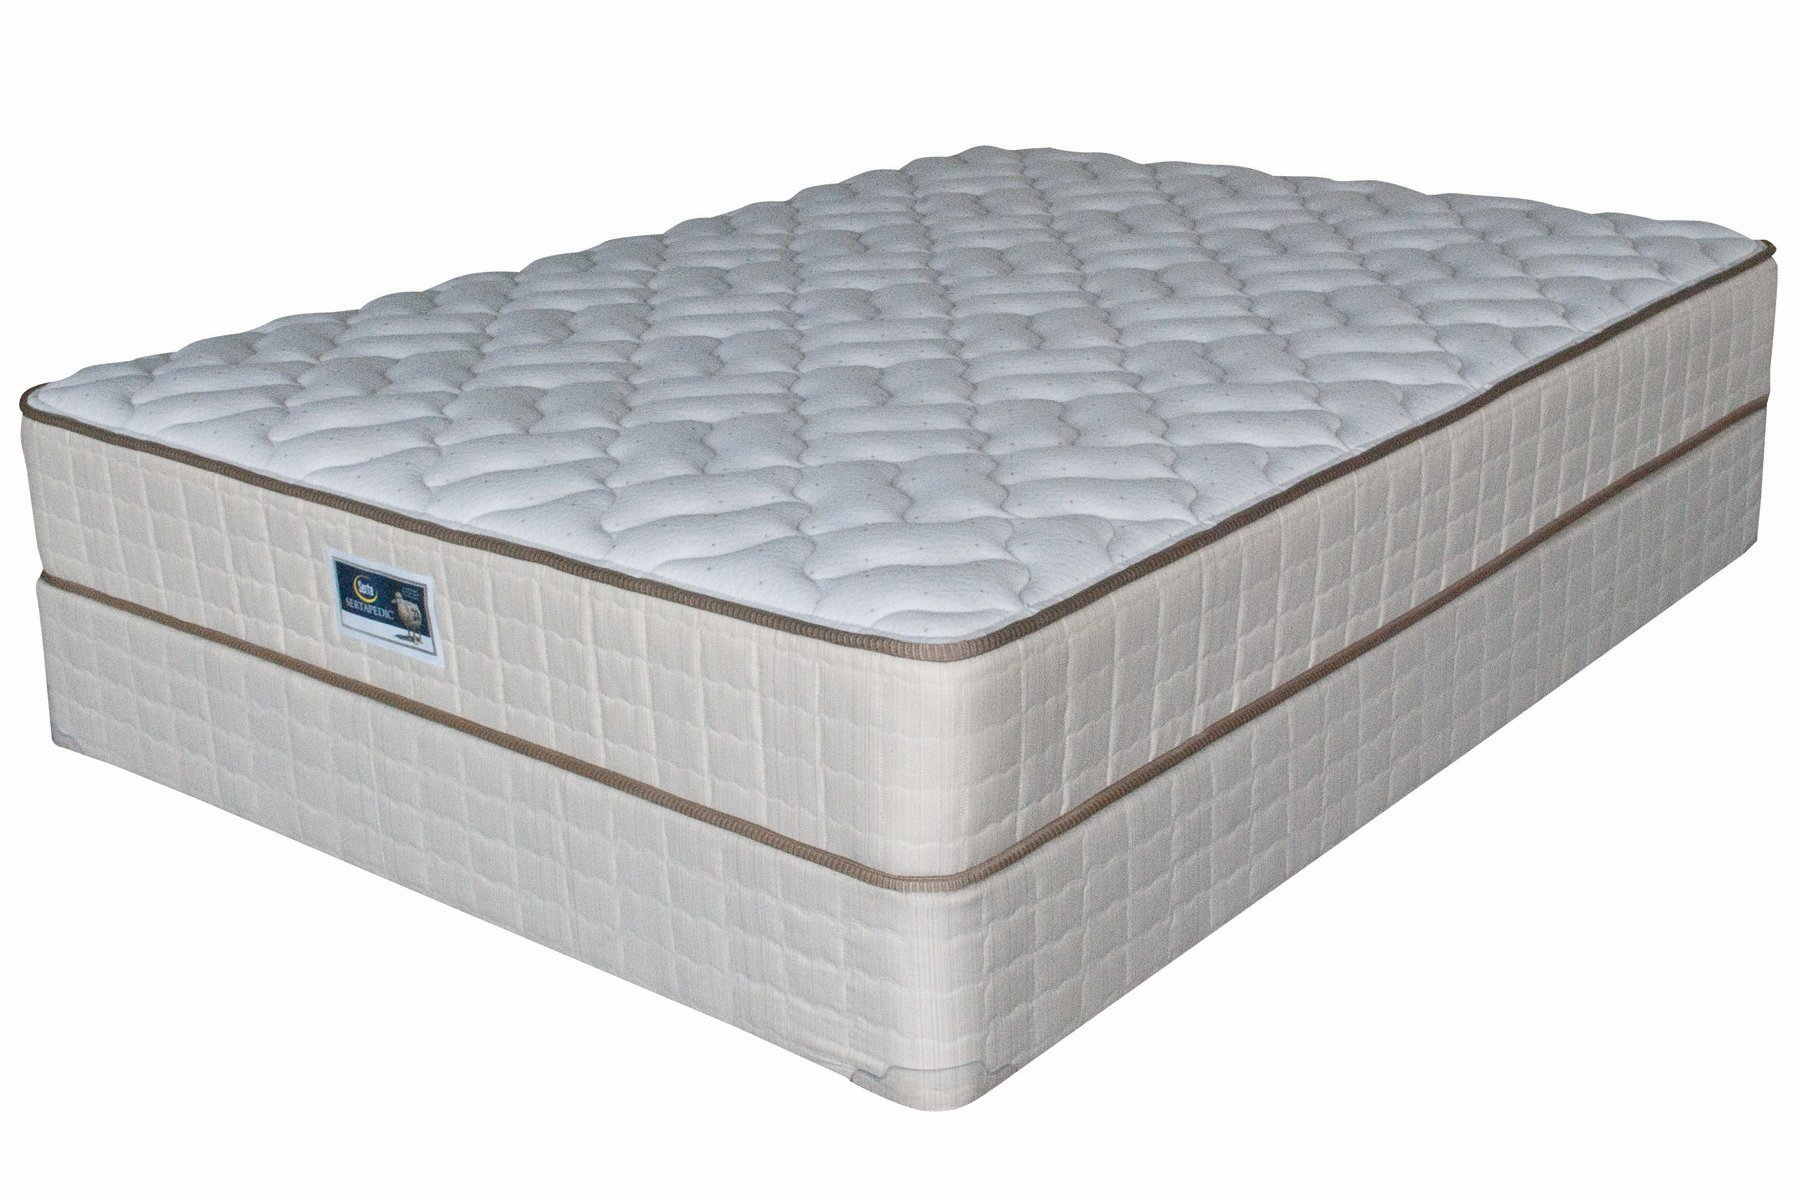 Sertapedic Toledo Firm Mattress Reviews Goodbed Com